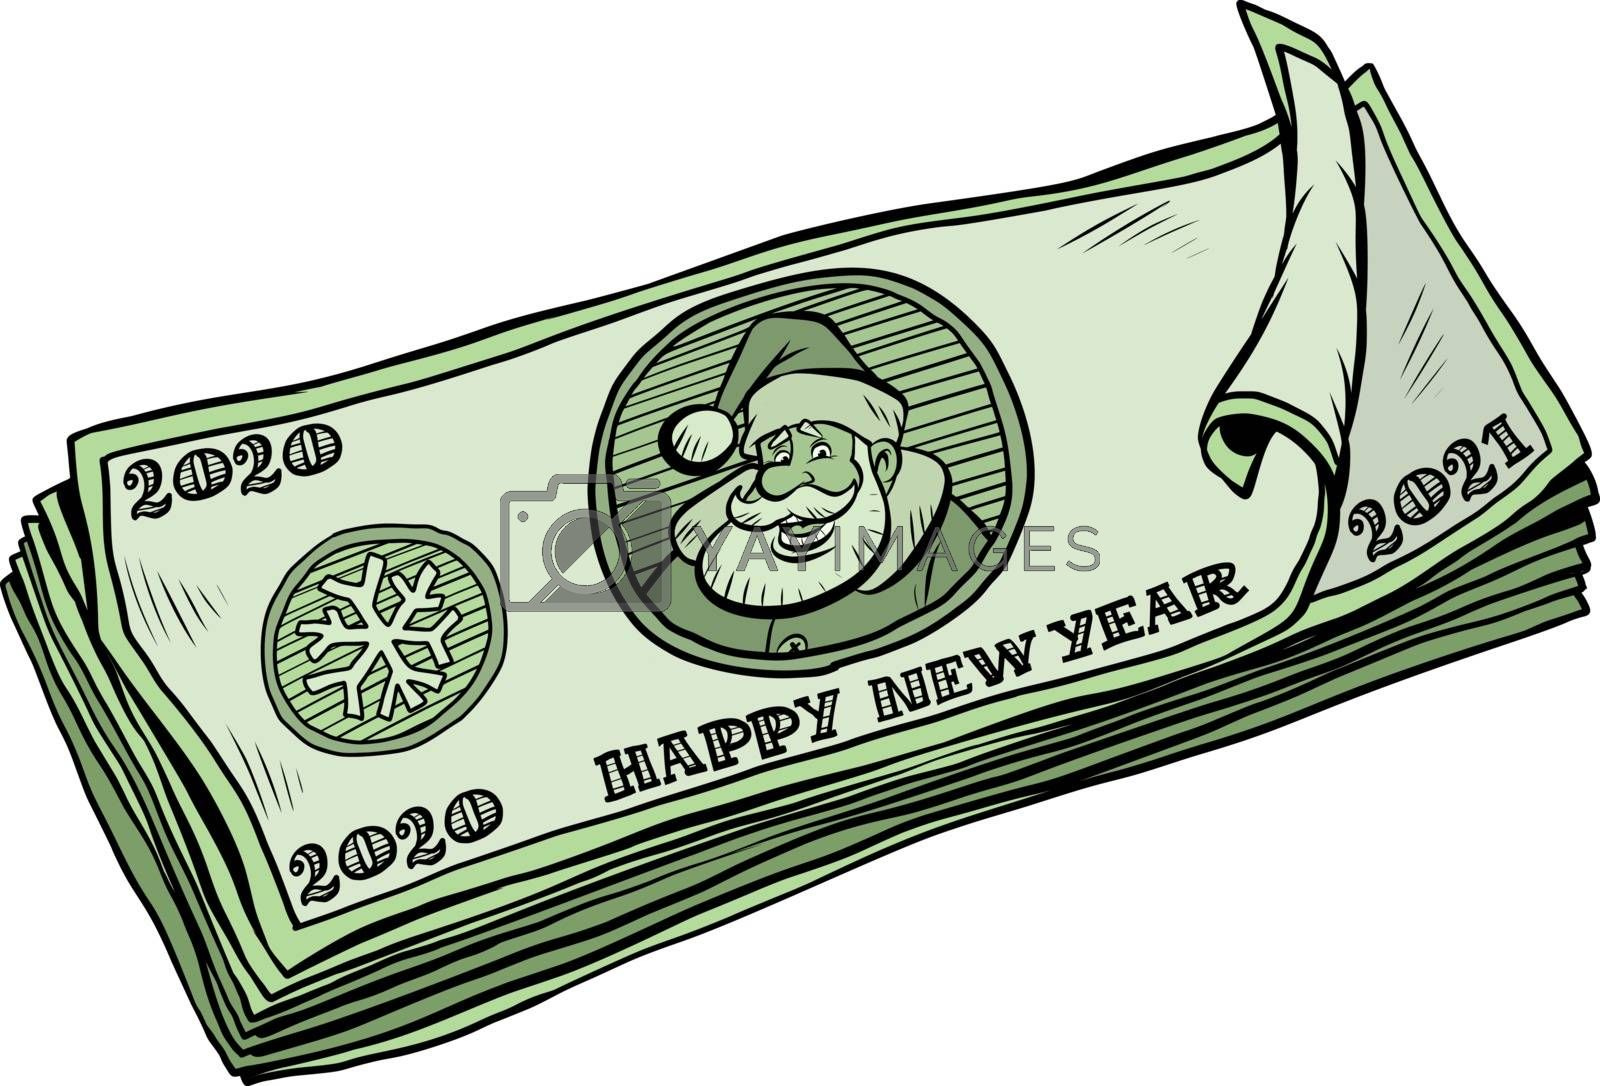 2020 2021 banknotes money cash. annual bonus. Santa Claus character Christmas new year. Comic cartoon pop art retro vector illustration drawing